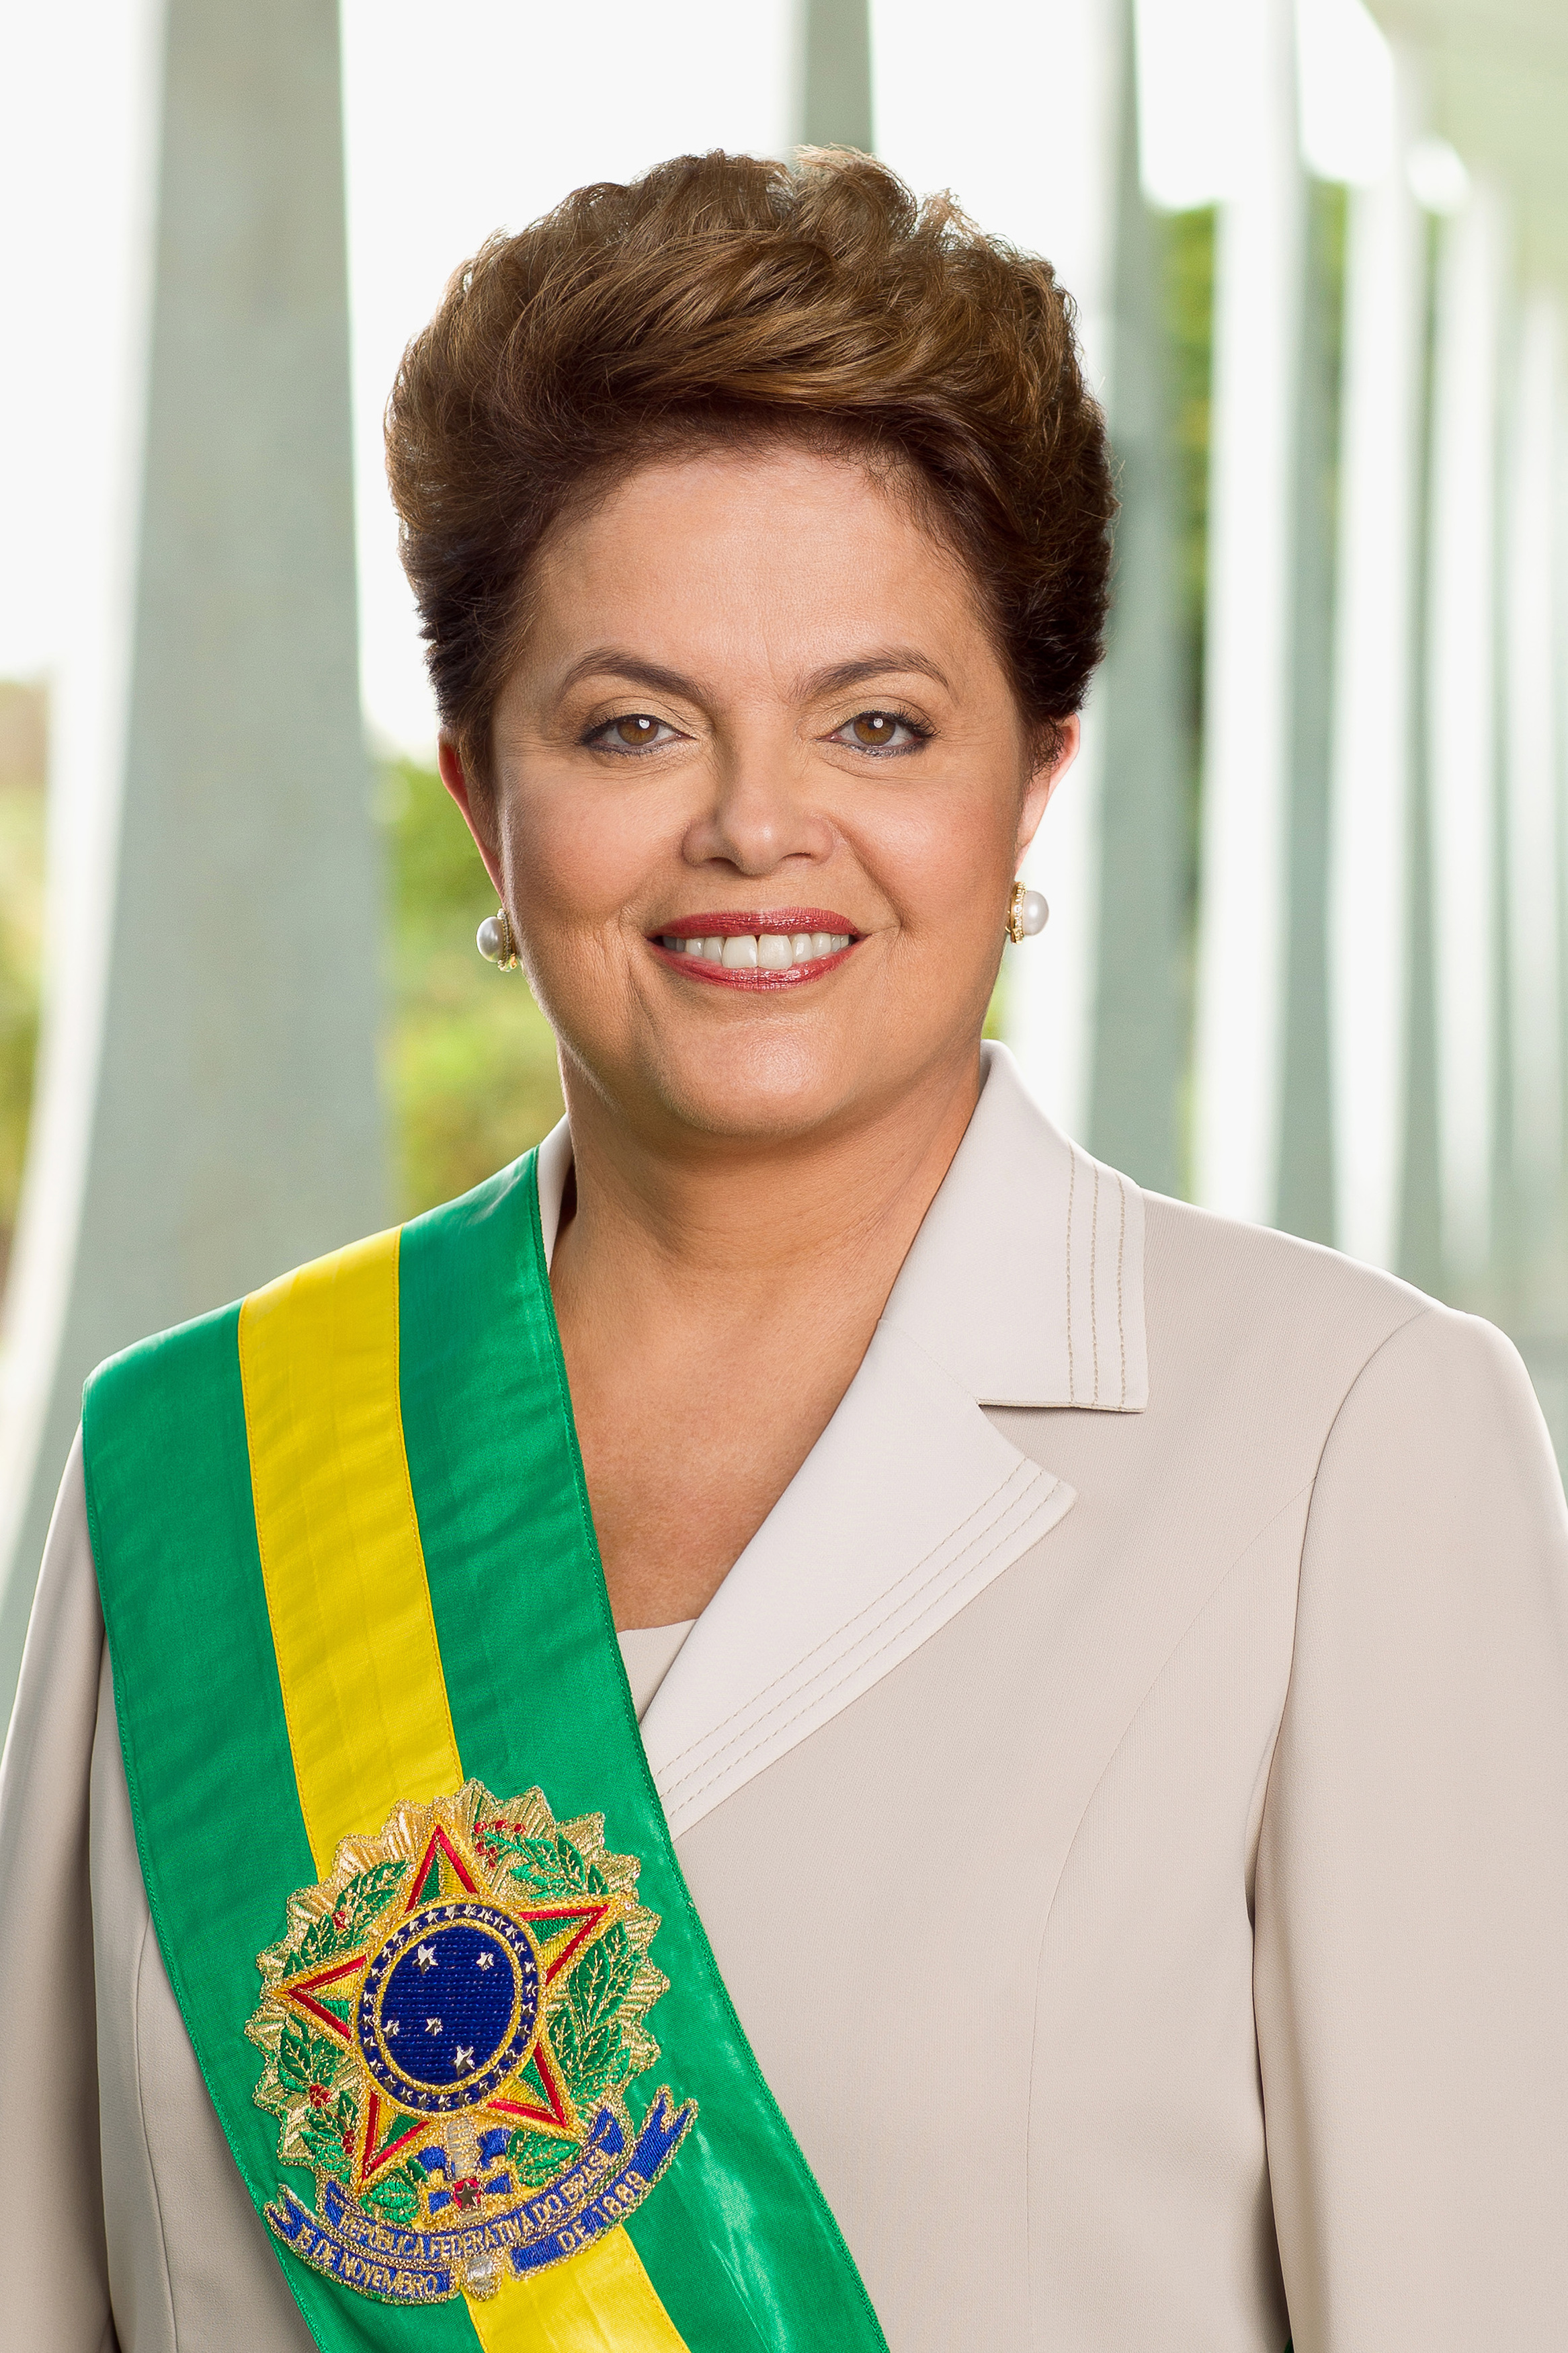 The 73-year old daughter of father Pedro Rousseff  and mother Dilma Jane da Silva Dilma Rousseff in 2021 photo. Dilma Rousseff earned a  million dollar salary - leaving the net worth at 1 million in 2021